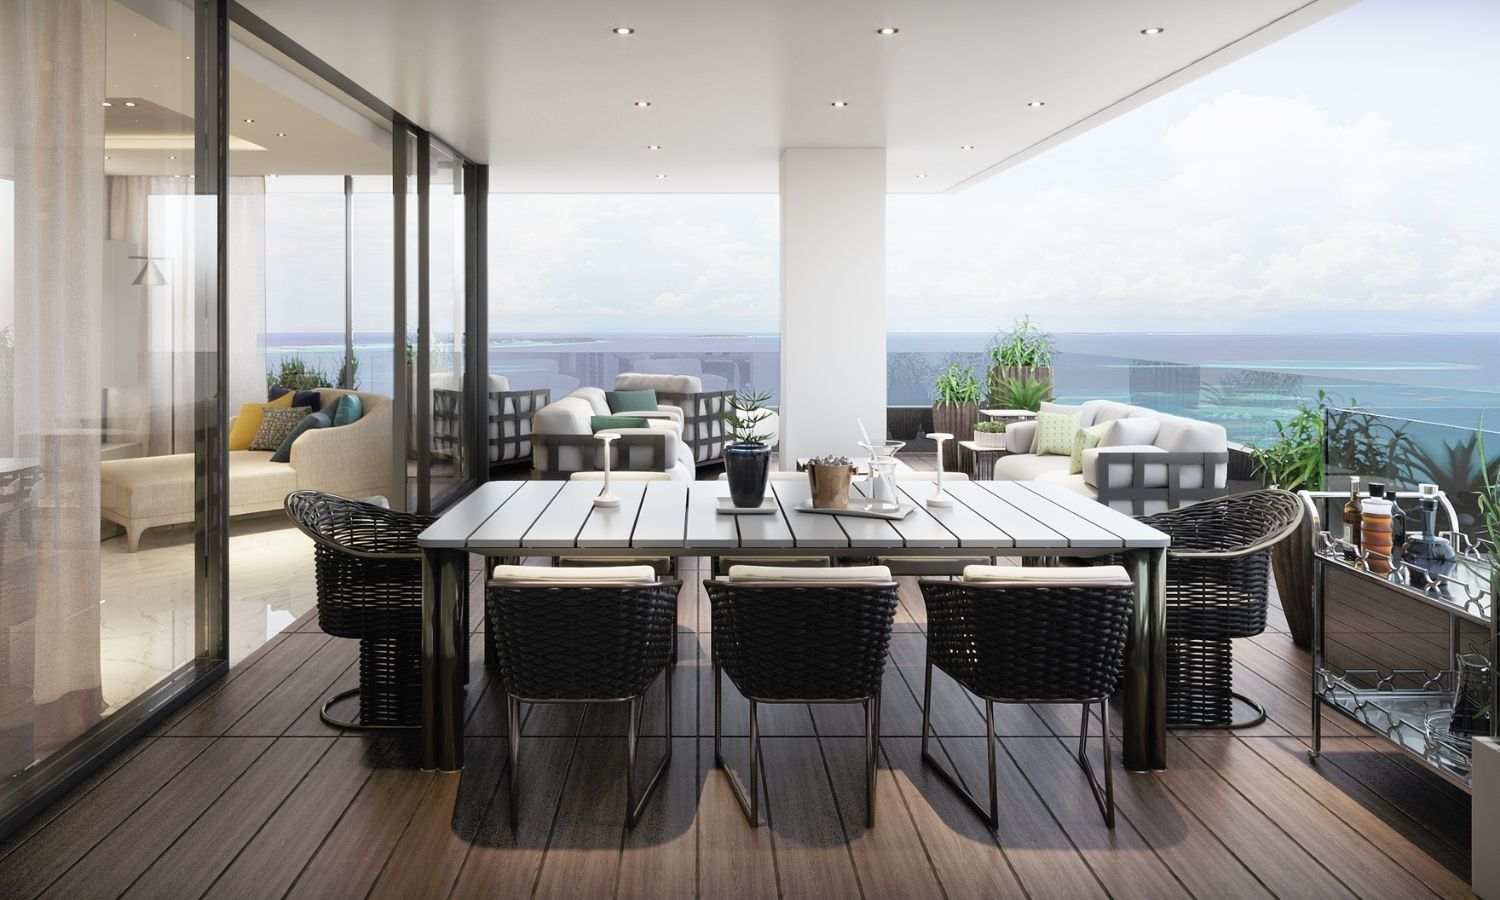 Stunning view on the Mediterranean Sea from Symbol's terrace. Studio D73